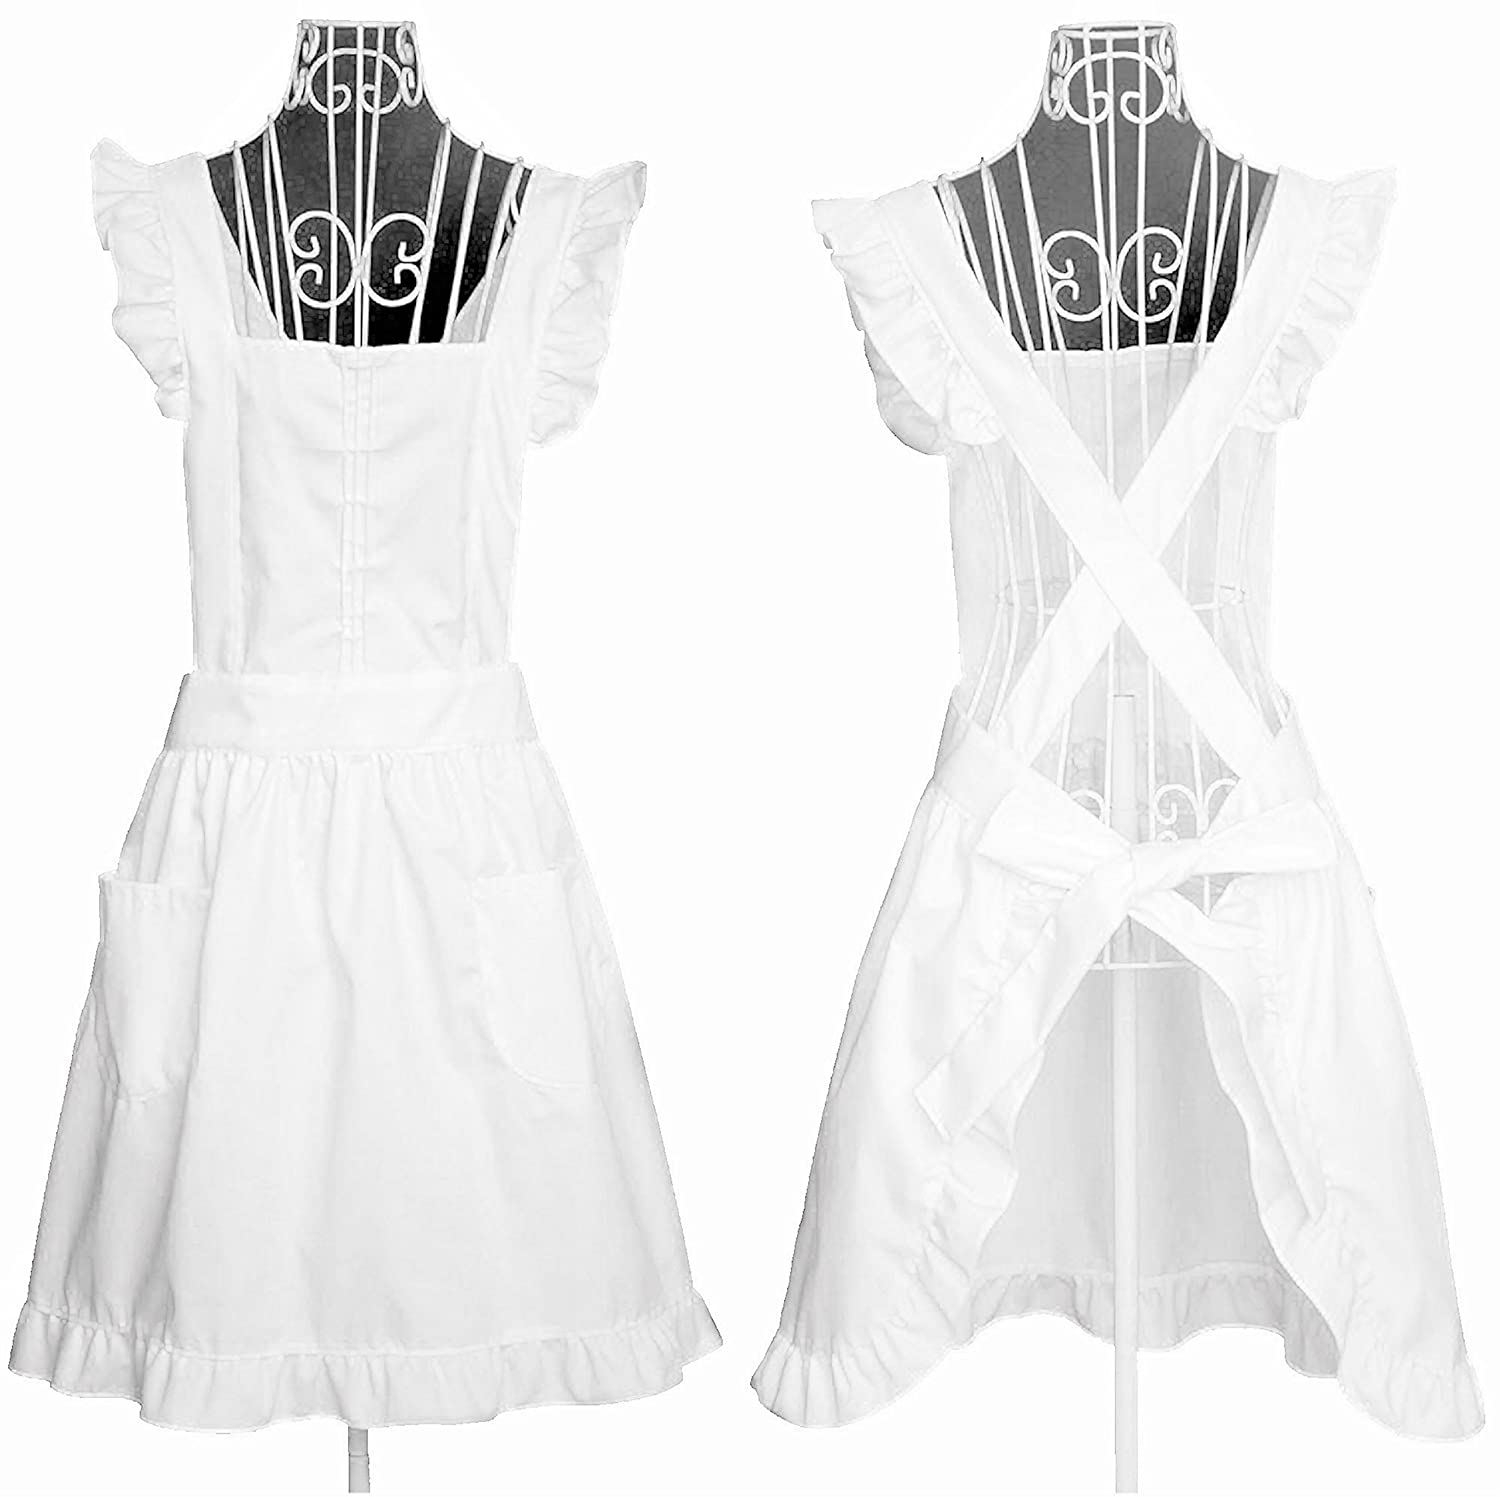 IB-ON Apron for Women & Girls with pockets | White, Custom Printable | Lovely White Apron for Cooks Bakers and Chefs, Servers & Waitresses size s-m Comfortable Fabric Quality Packaged in Gift Box COMINHKPR148668